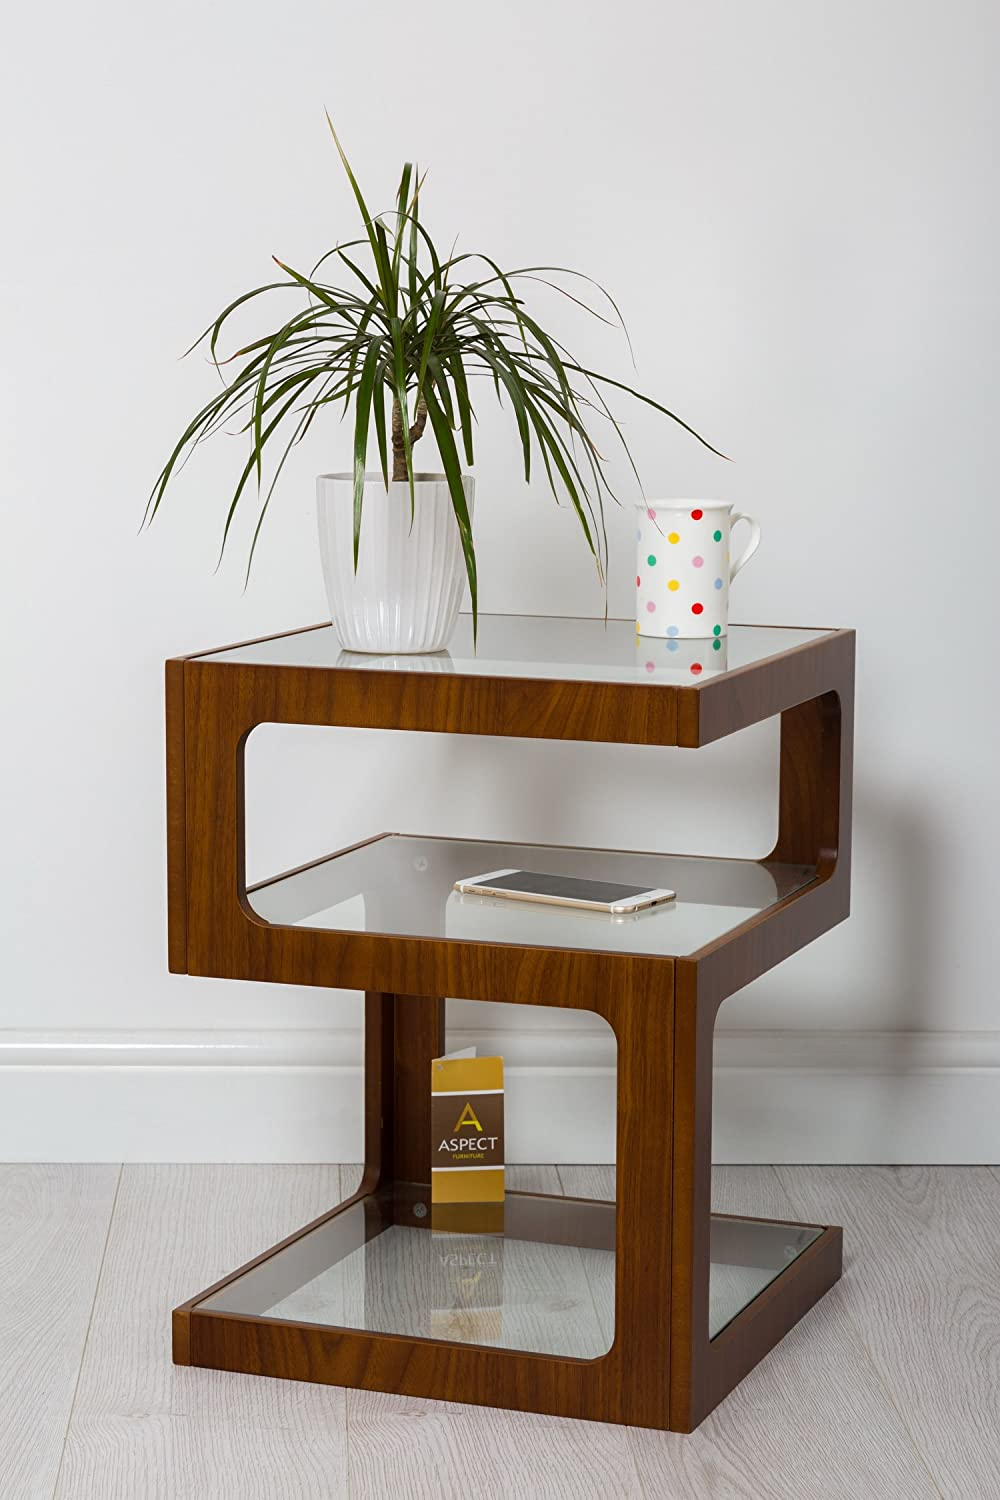 Aspect rossini triple level side tablecoffee tableend tablelamp aspect rossini triple level side tablecoffee tableend tablelamp table walnut wood amazon kitchen home geotapseo Image collections